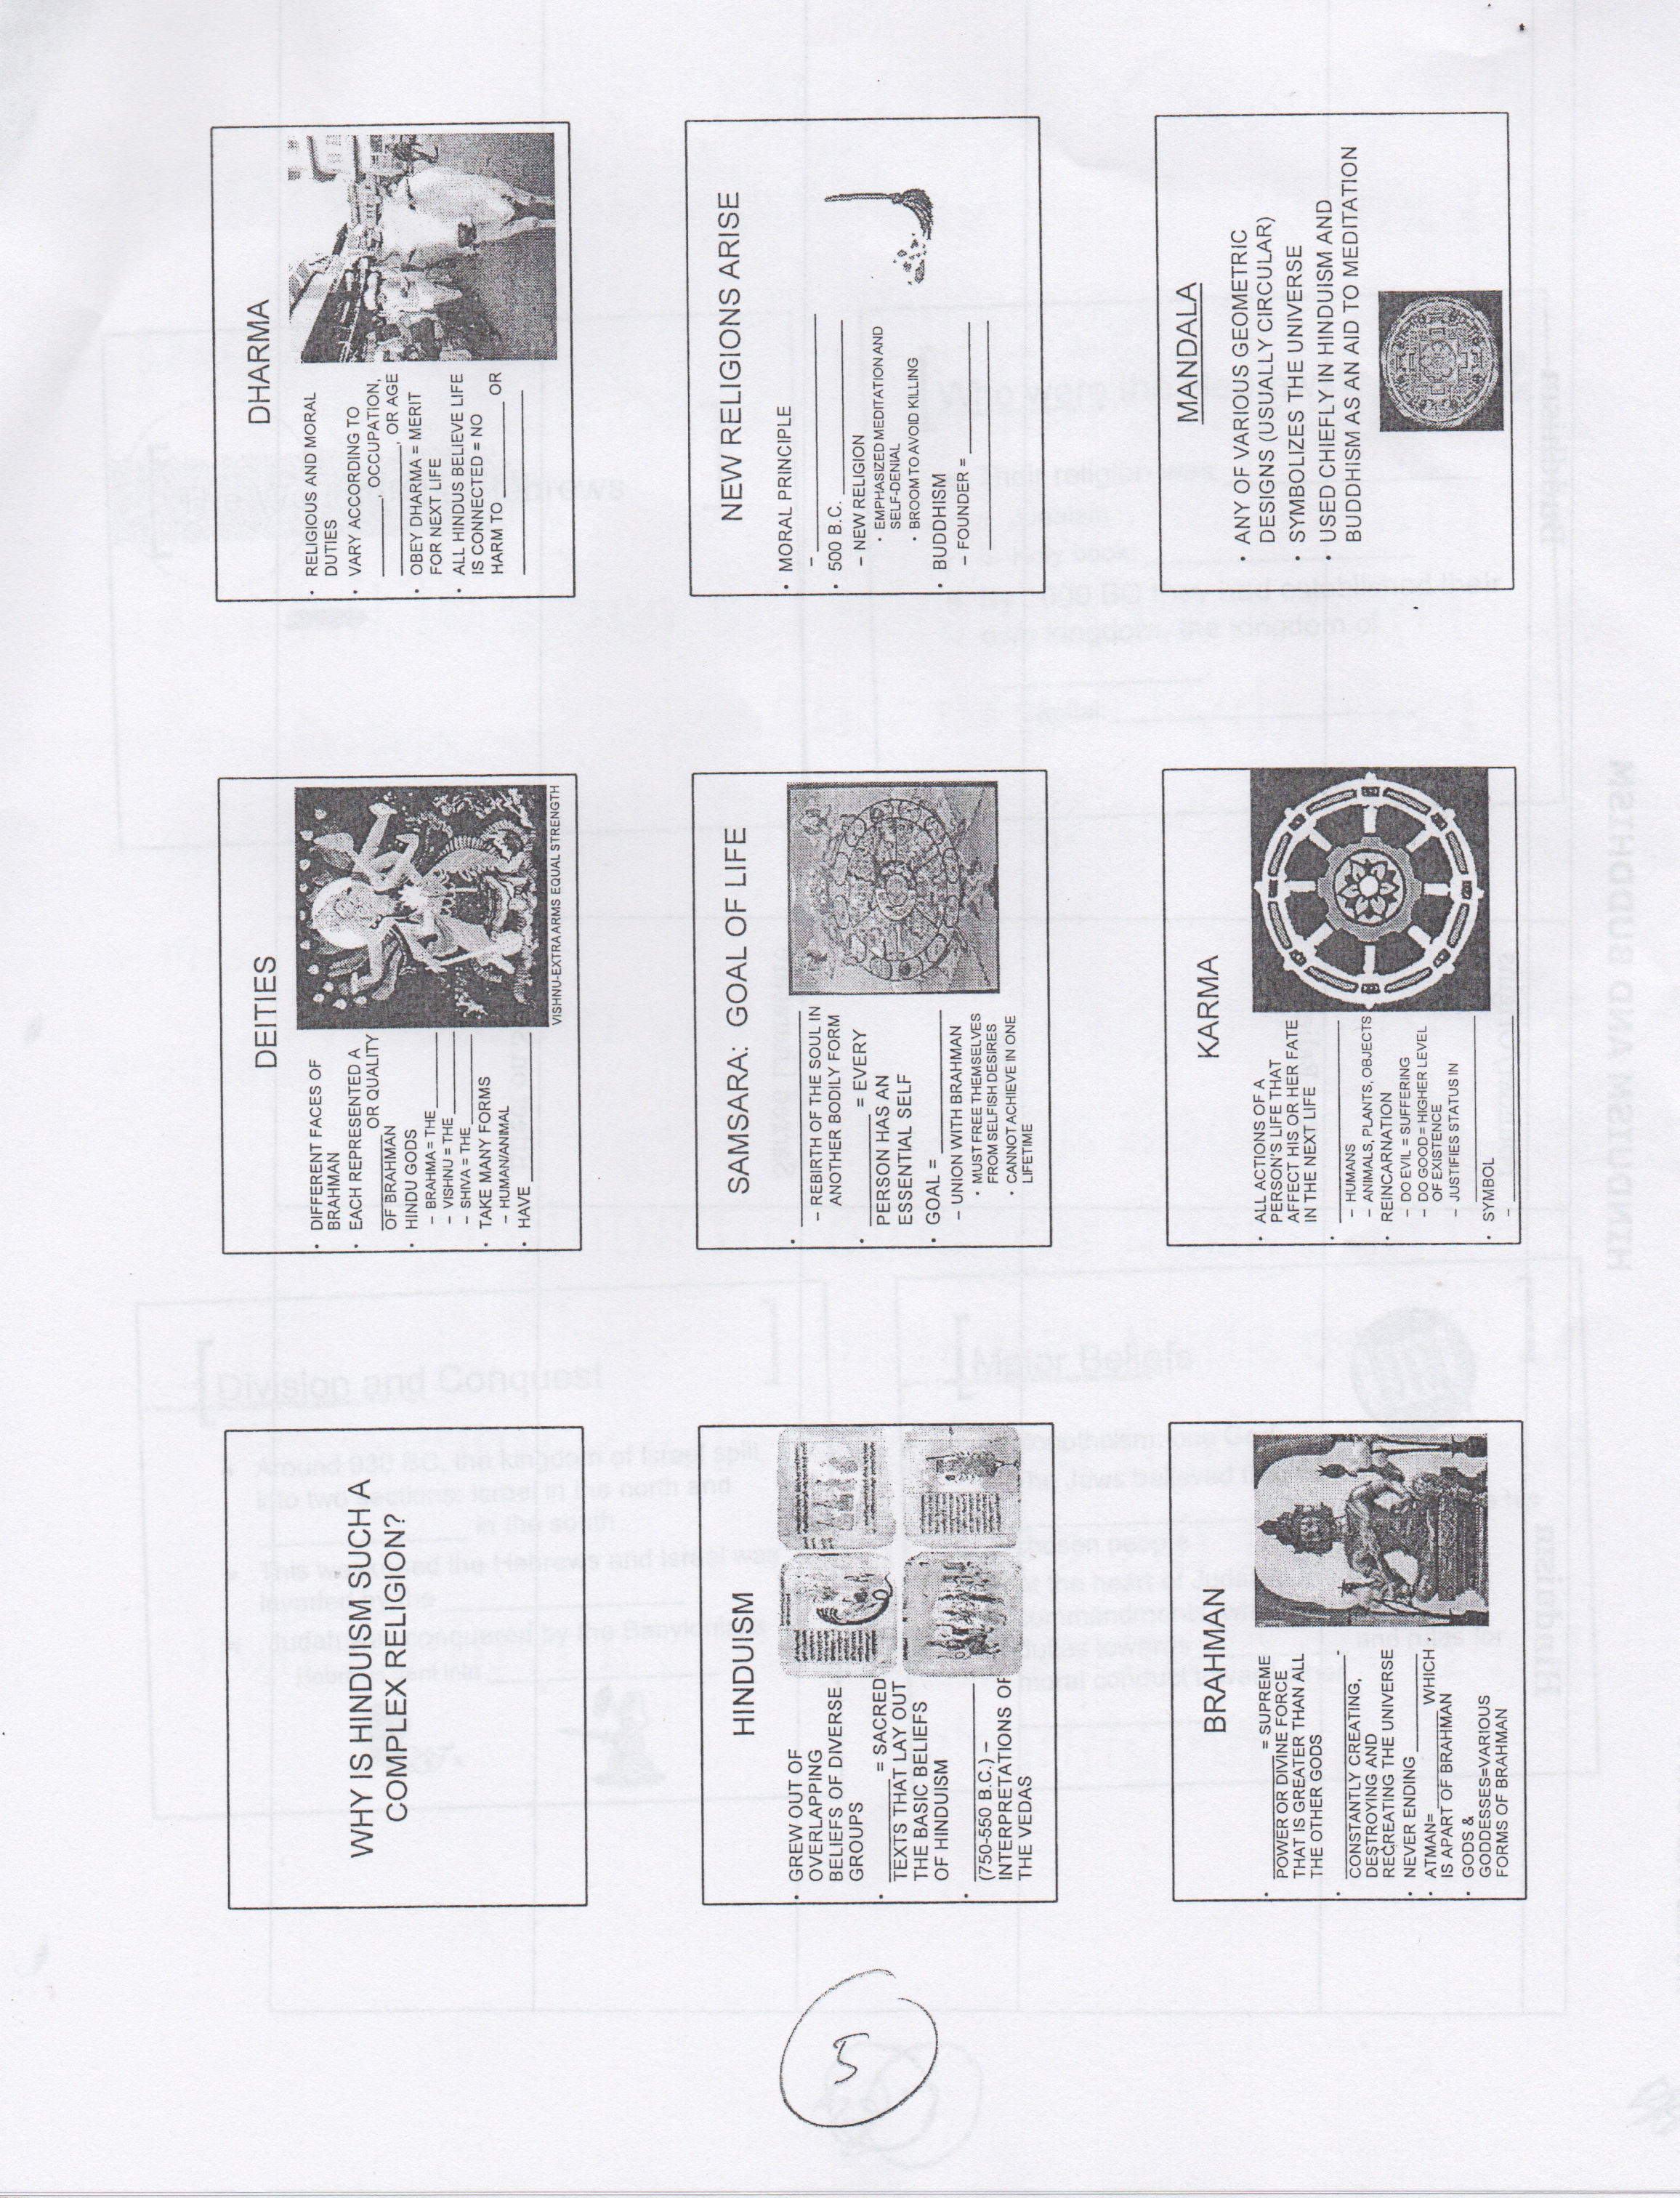 History lesson plans hinduism ppt slides pooptronica Images